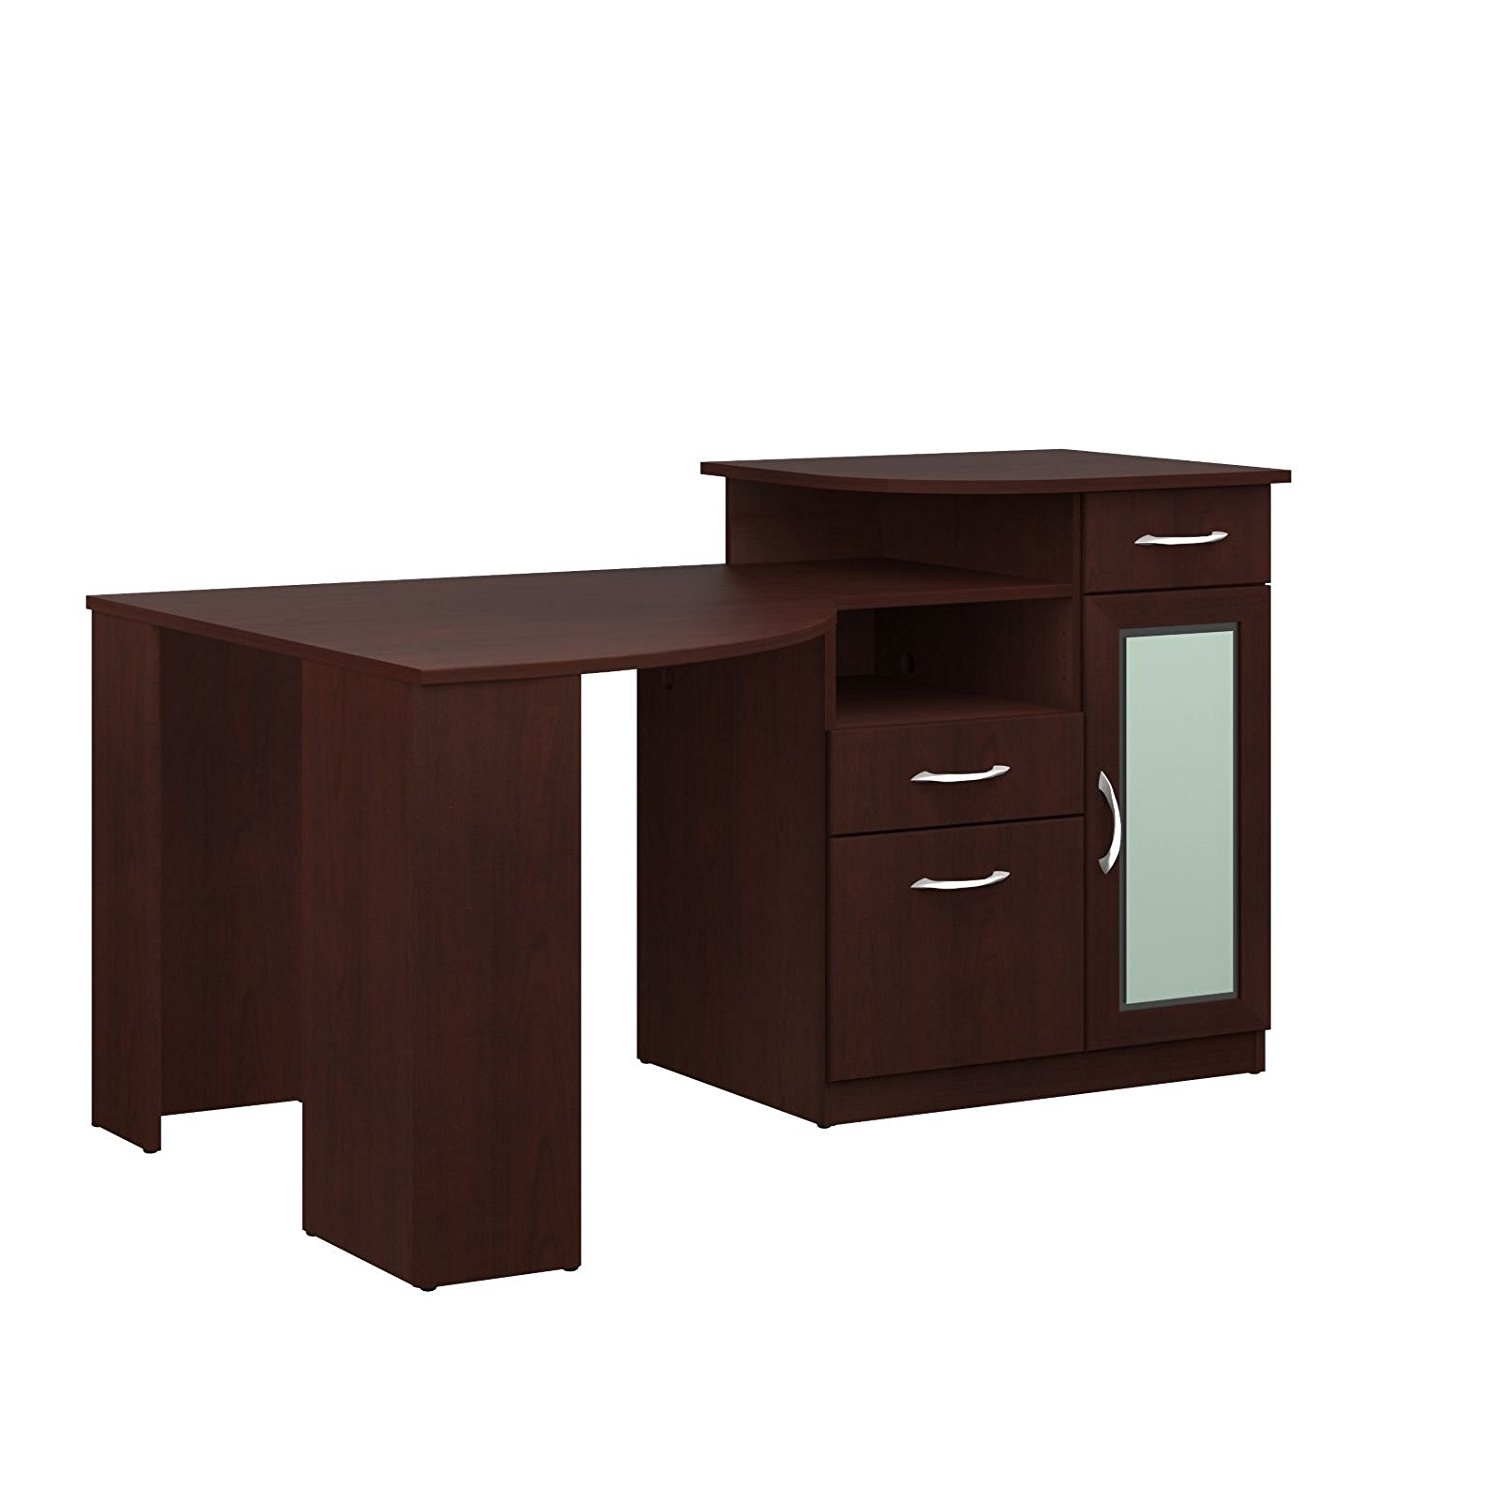 Fashionable Furniture : Cheap Office Furniture Reception Desk Office Desk For Computer Desks For Bedrooms (View 19 of 20)